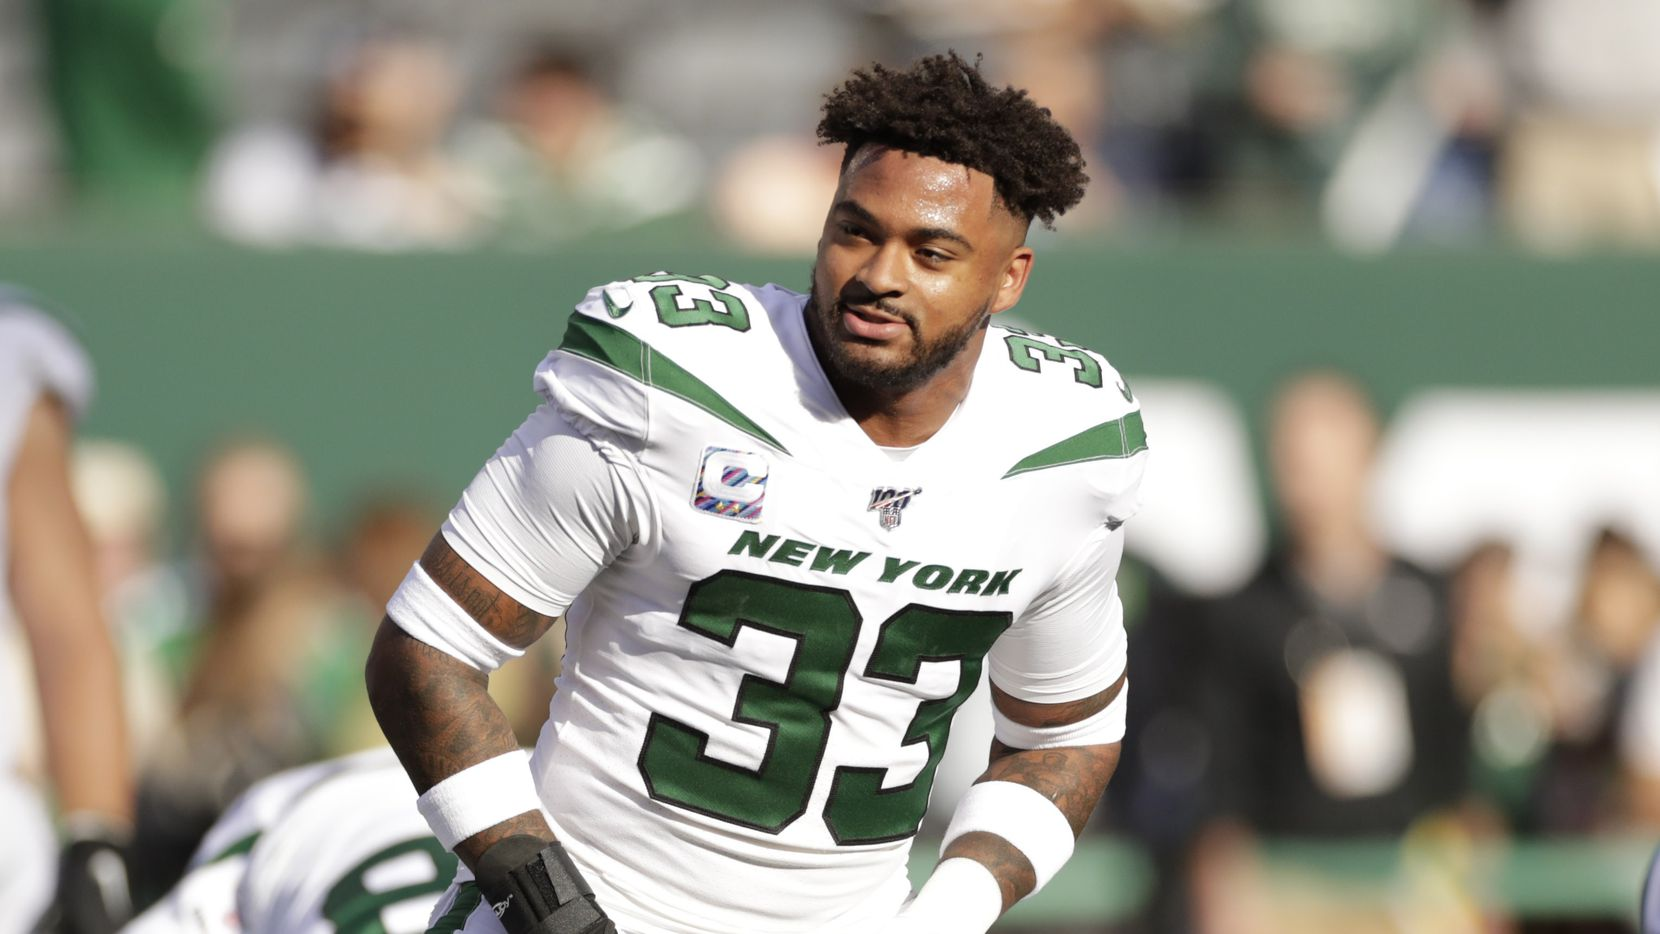 New York Jets' Jamal Adams warms-up before an NFL football game against the Dallas Cowboys, Sunday, Oct. 13, 2019, in East Rutherford, N.J.